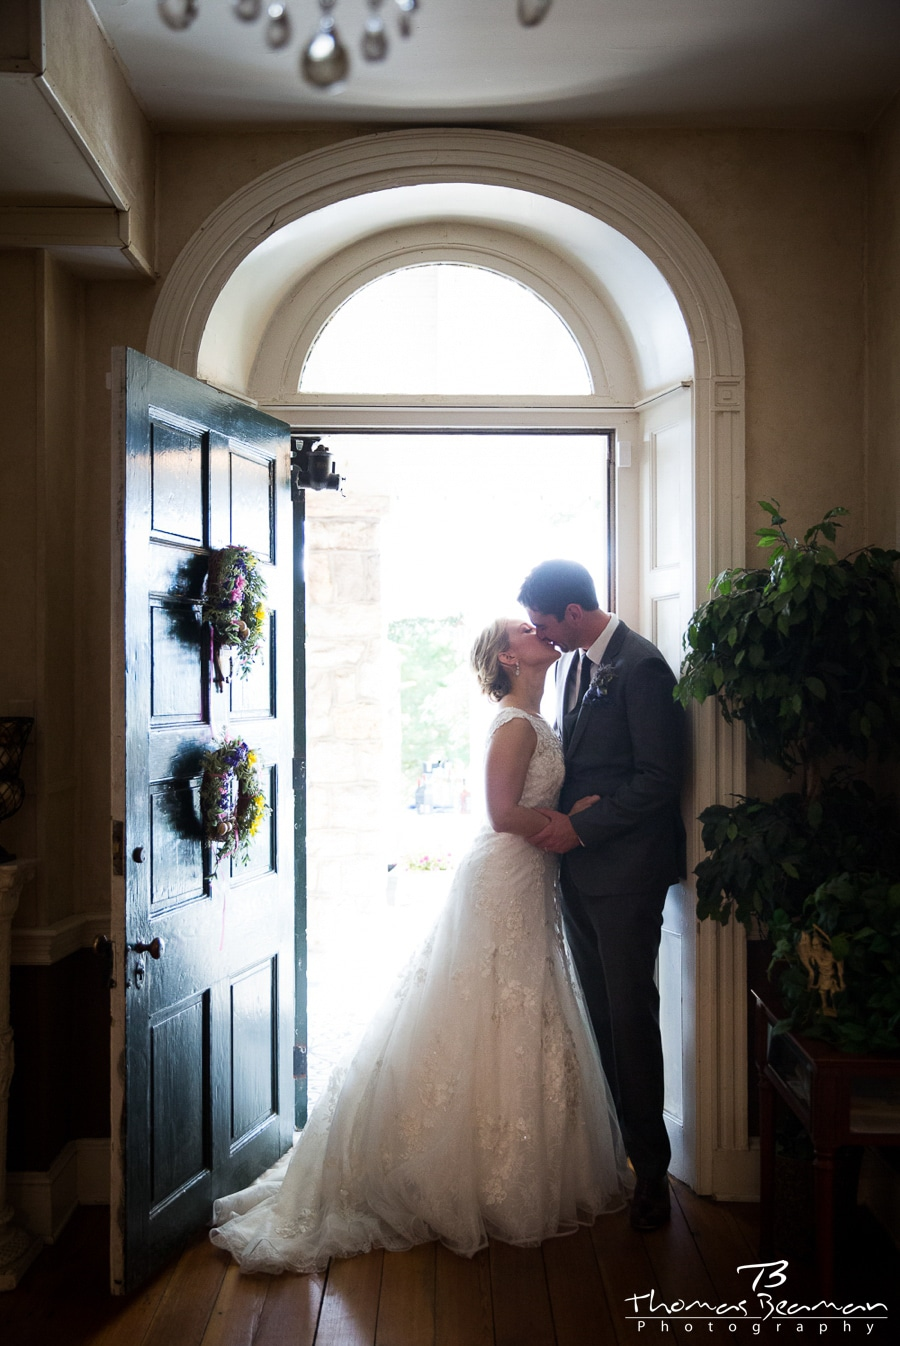 Thomas_beaman_wedding_best_of_2015_photo-67